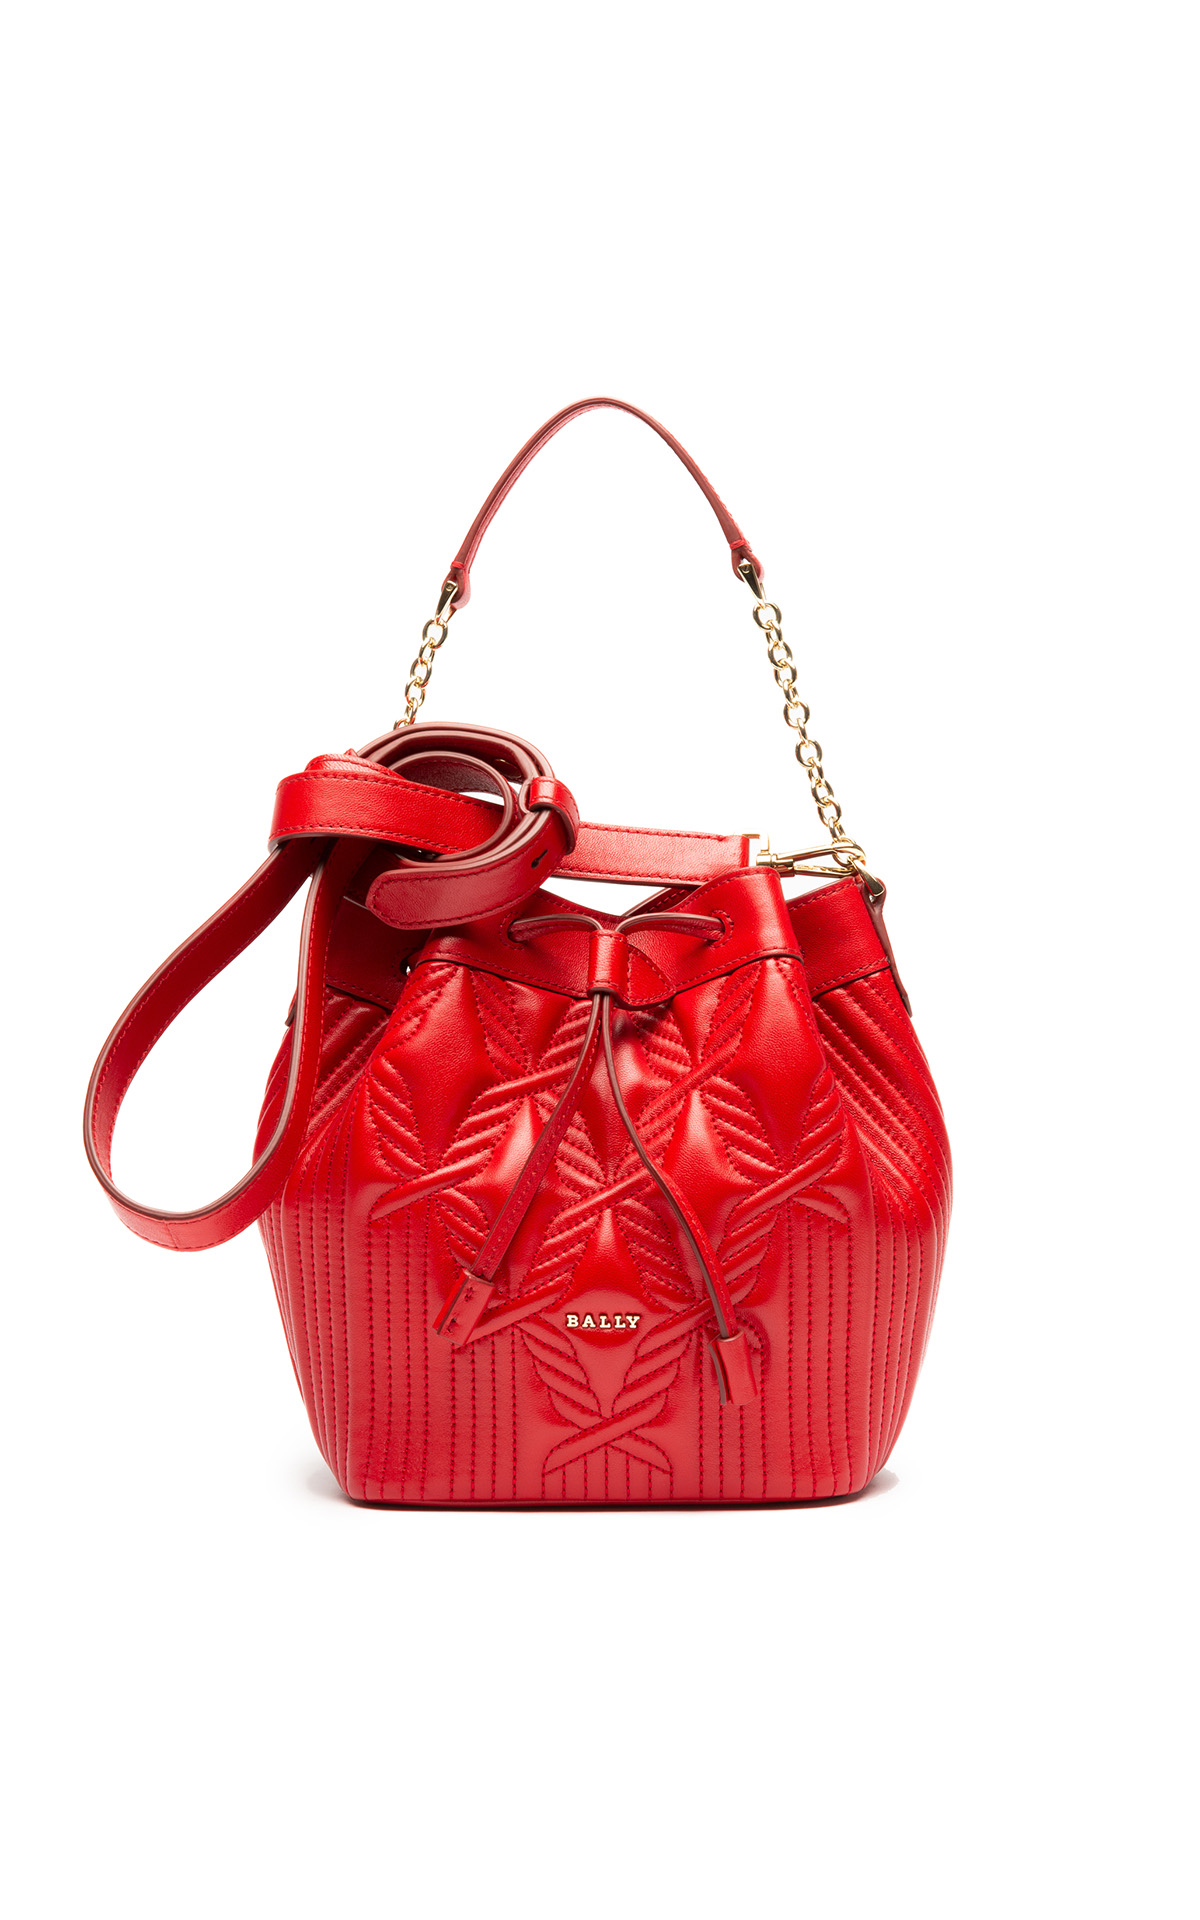 Bally Balear red ladies bag from Bicester Village